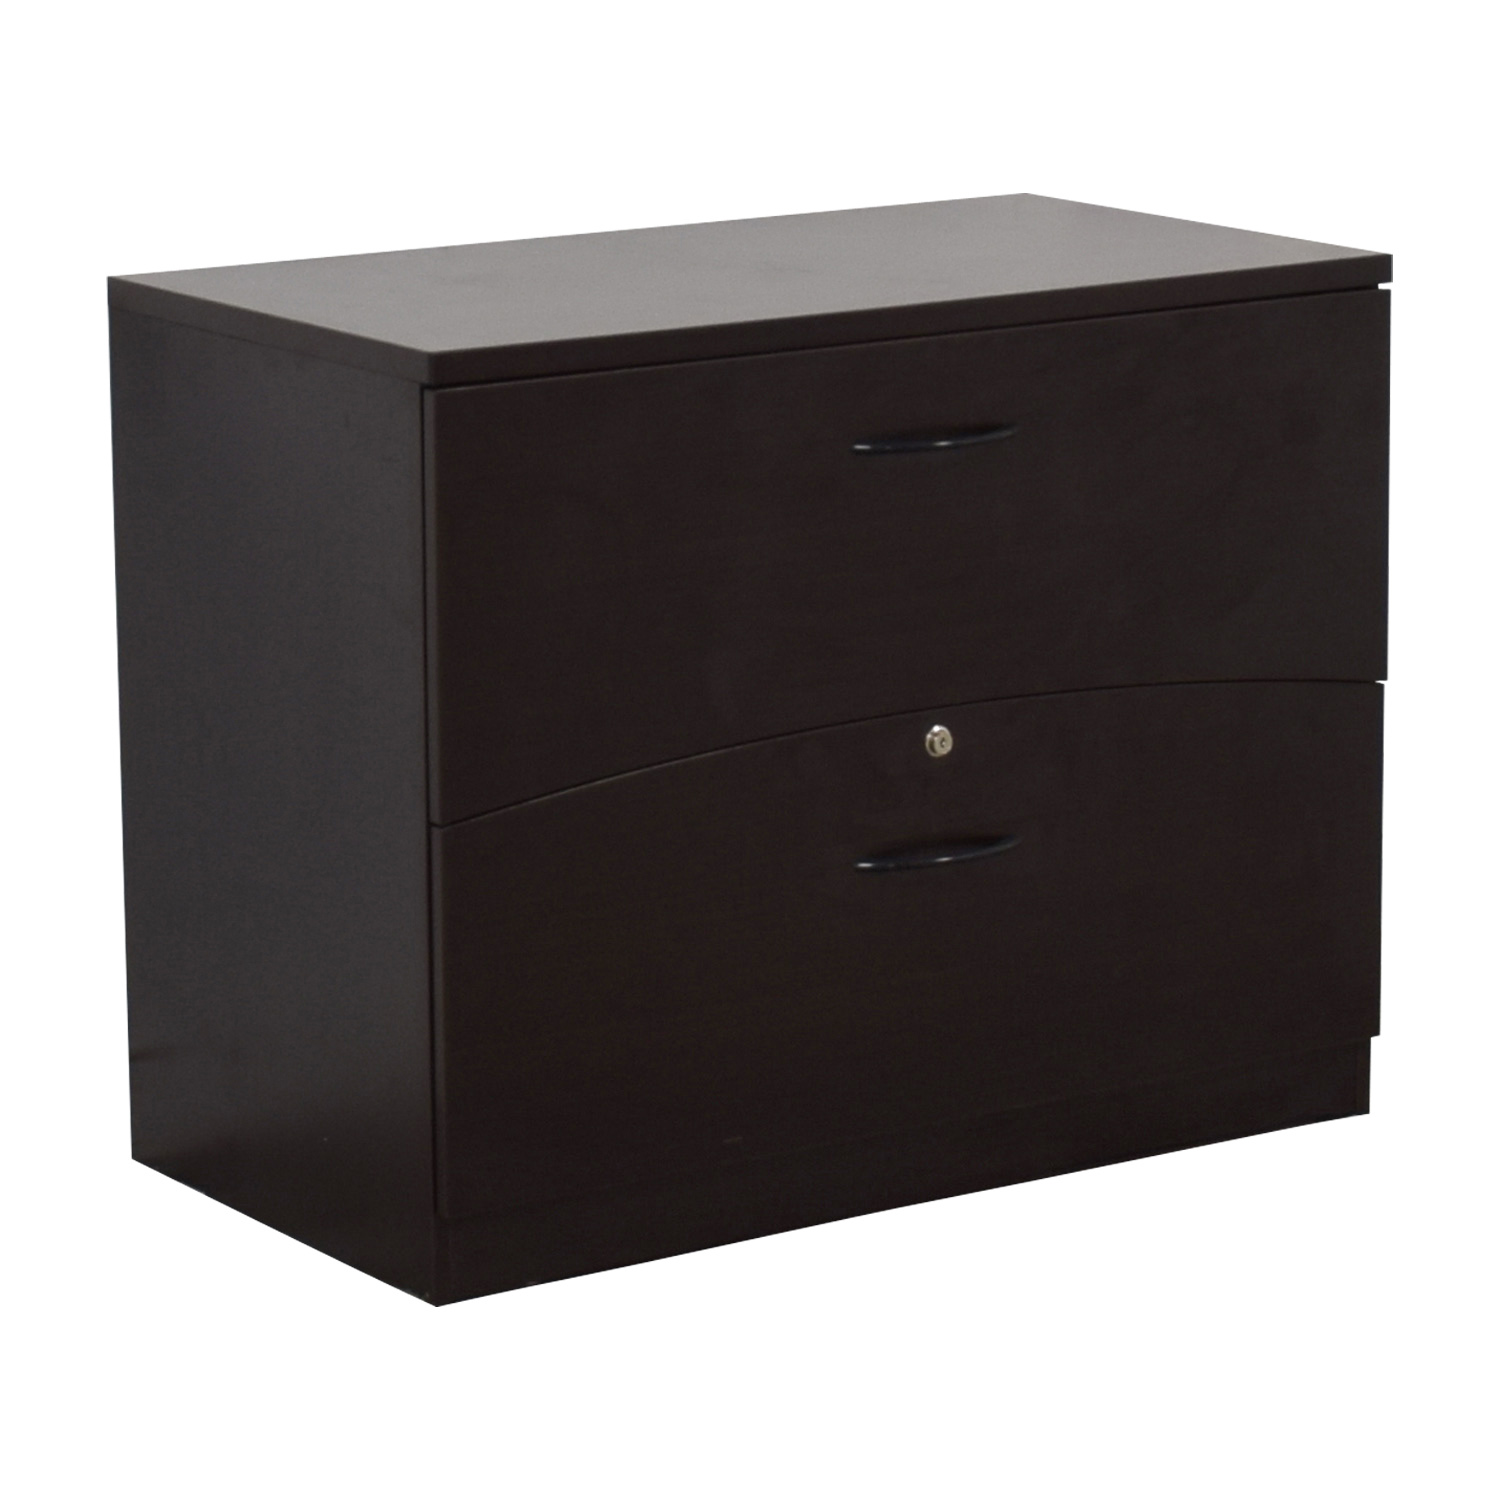 Mayline Mayline Two-Drawer Lateral File Cabinet for sale